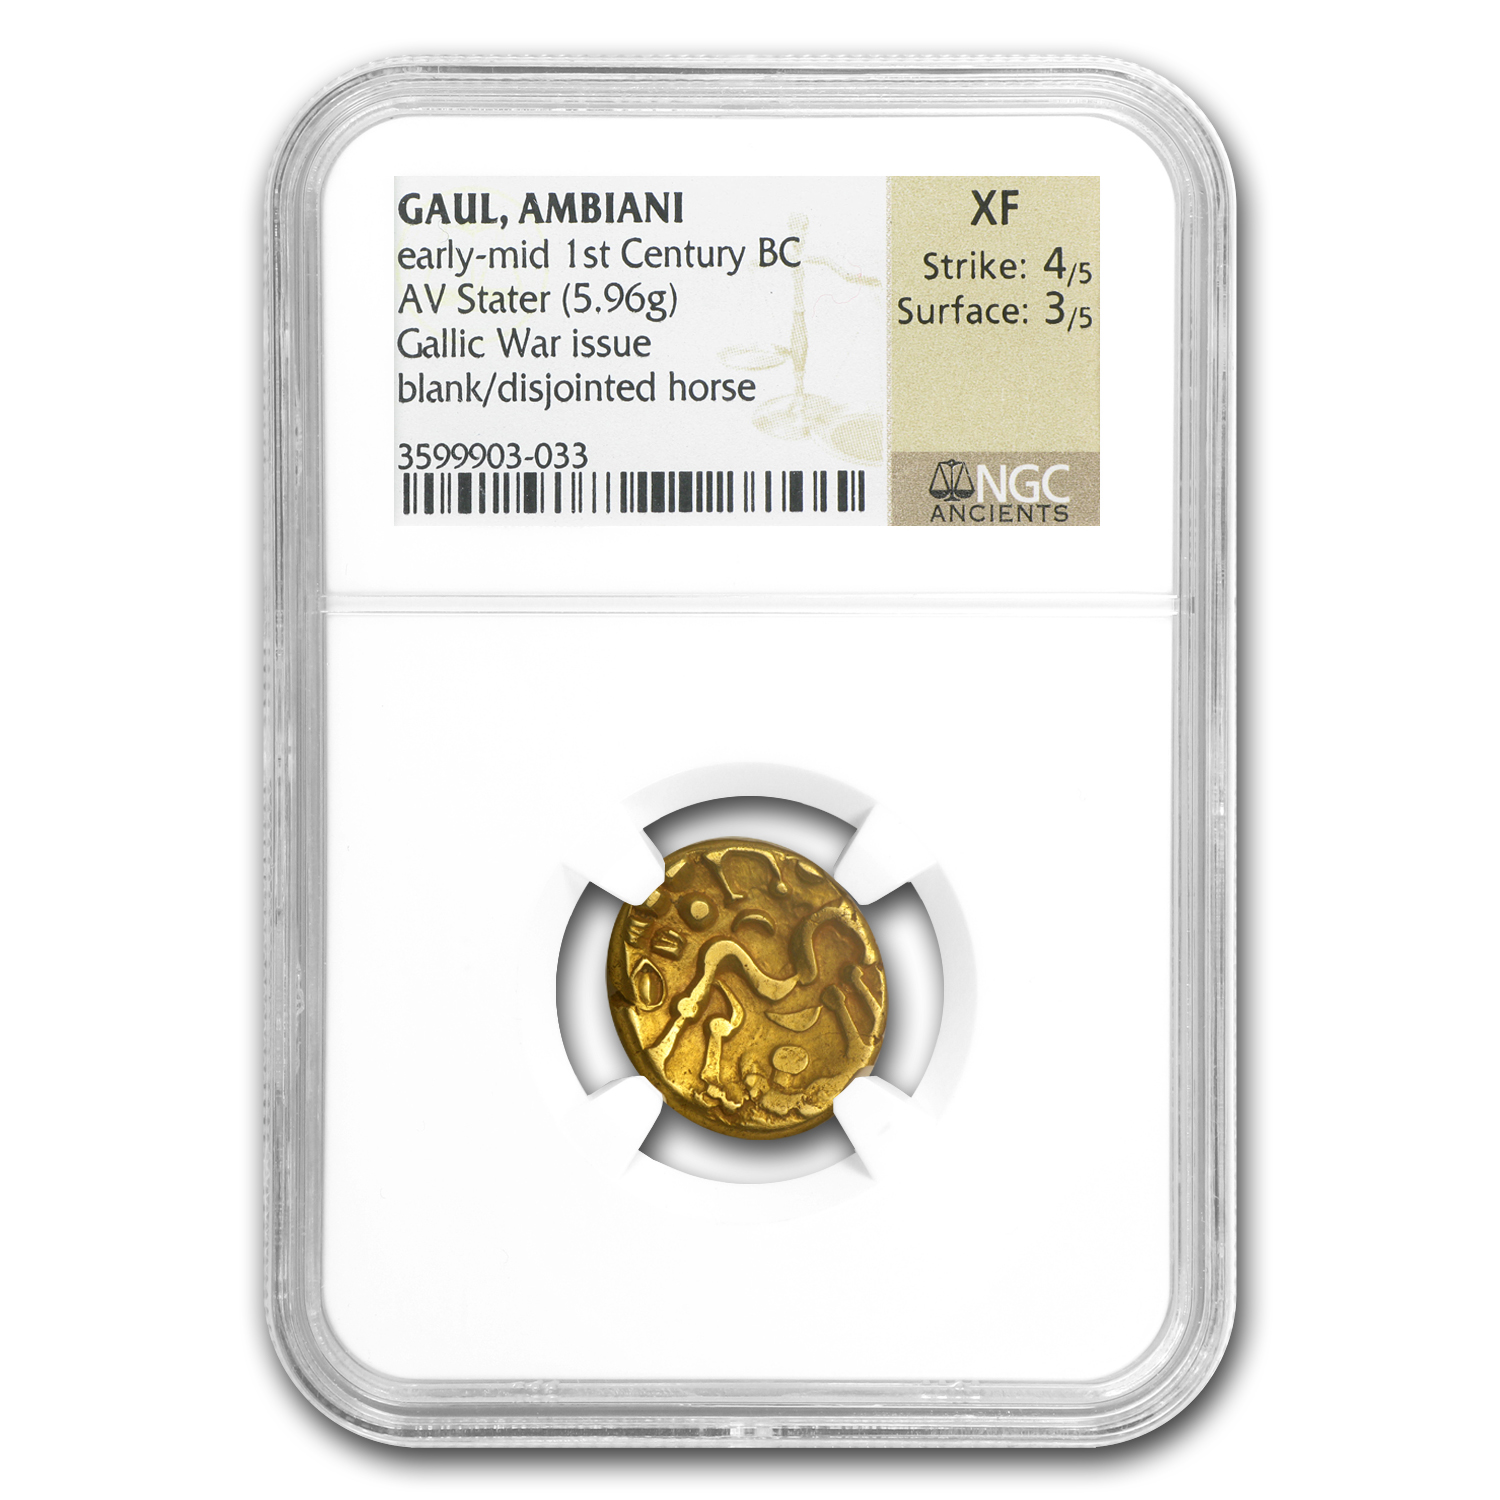 Gaul Ambiani AV Gold Stater 1st Cent BC XF-NGC